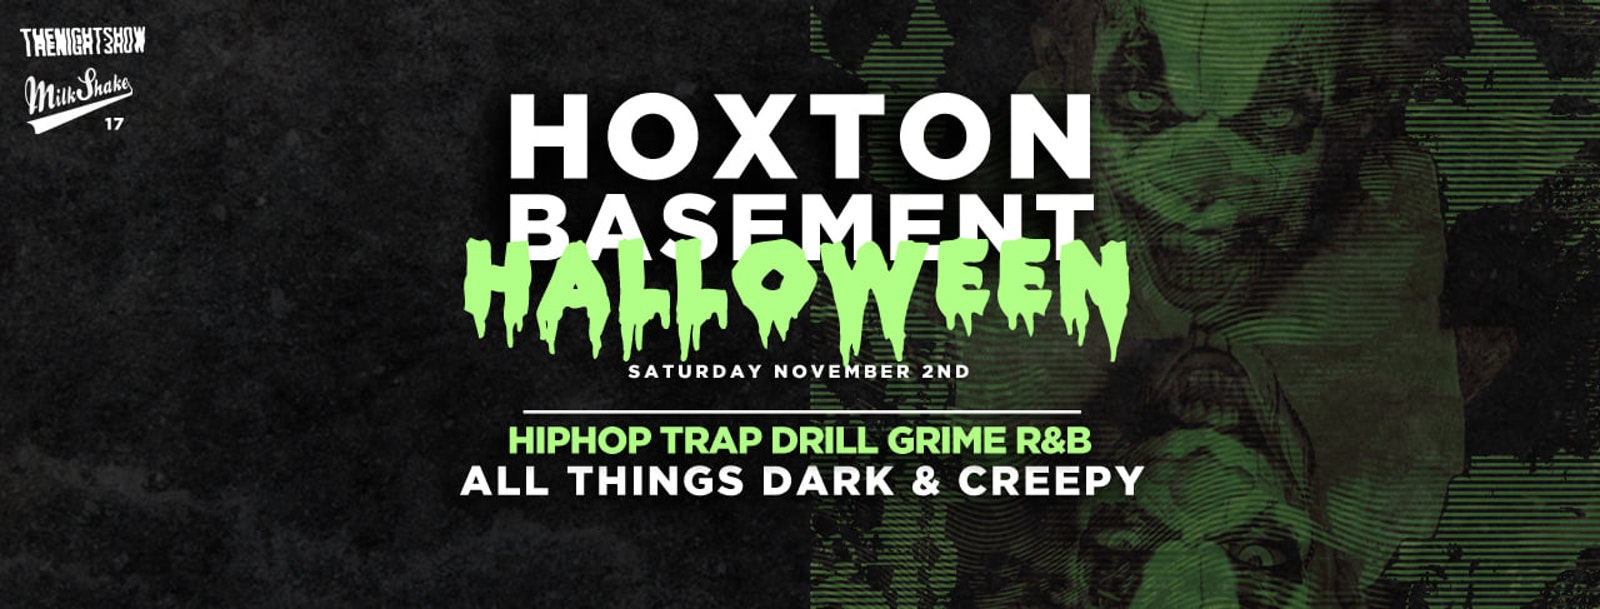 Halloween London 2019 in the Basement | Hoxton Basement – Trap x Grime x Drill x HipHop